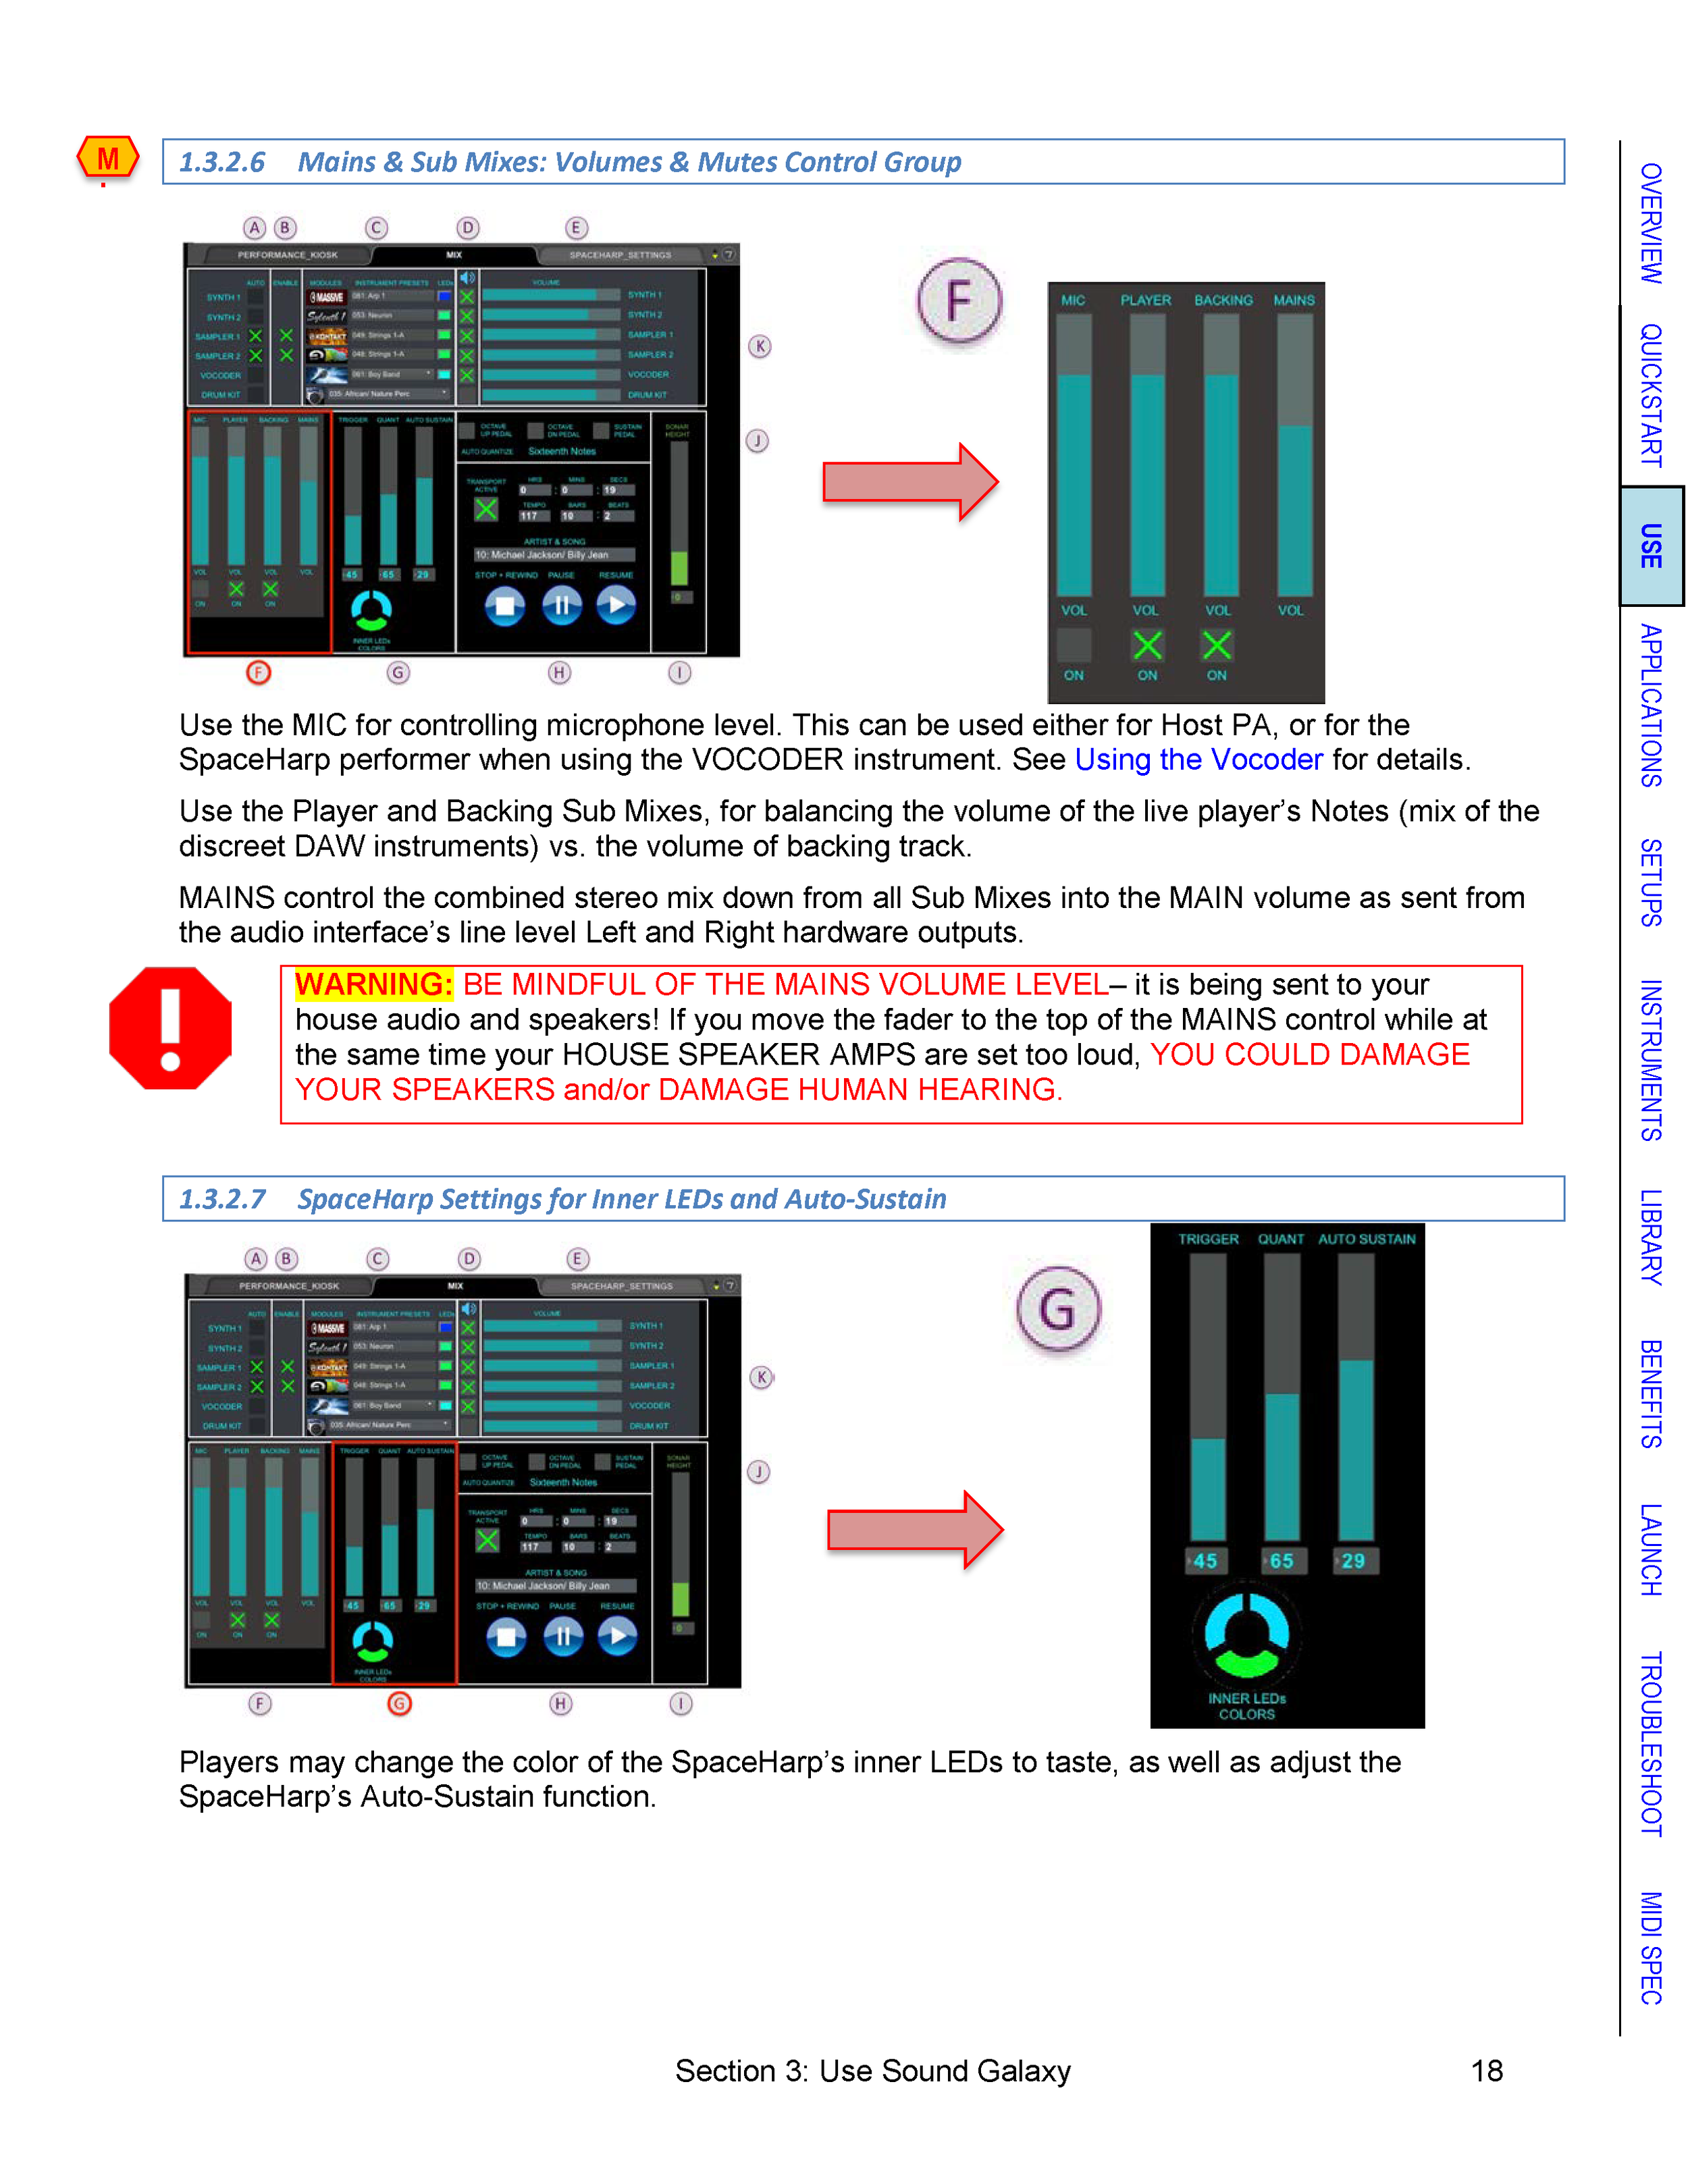 Sound_Galaxy_2_User_Guide_Oct-10-2017_released_Page_018.png